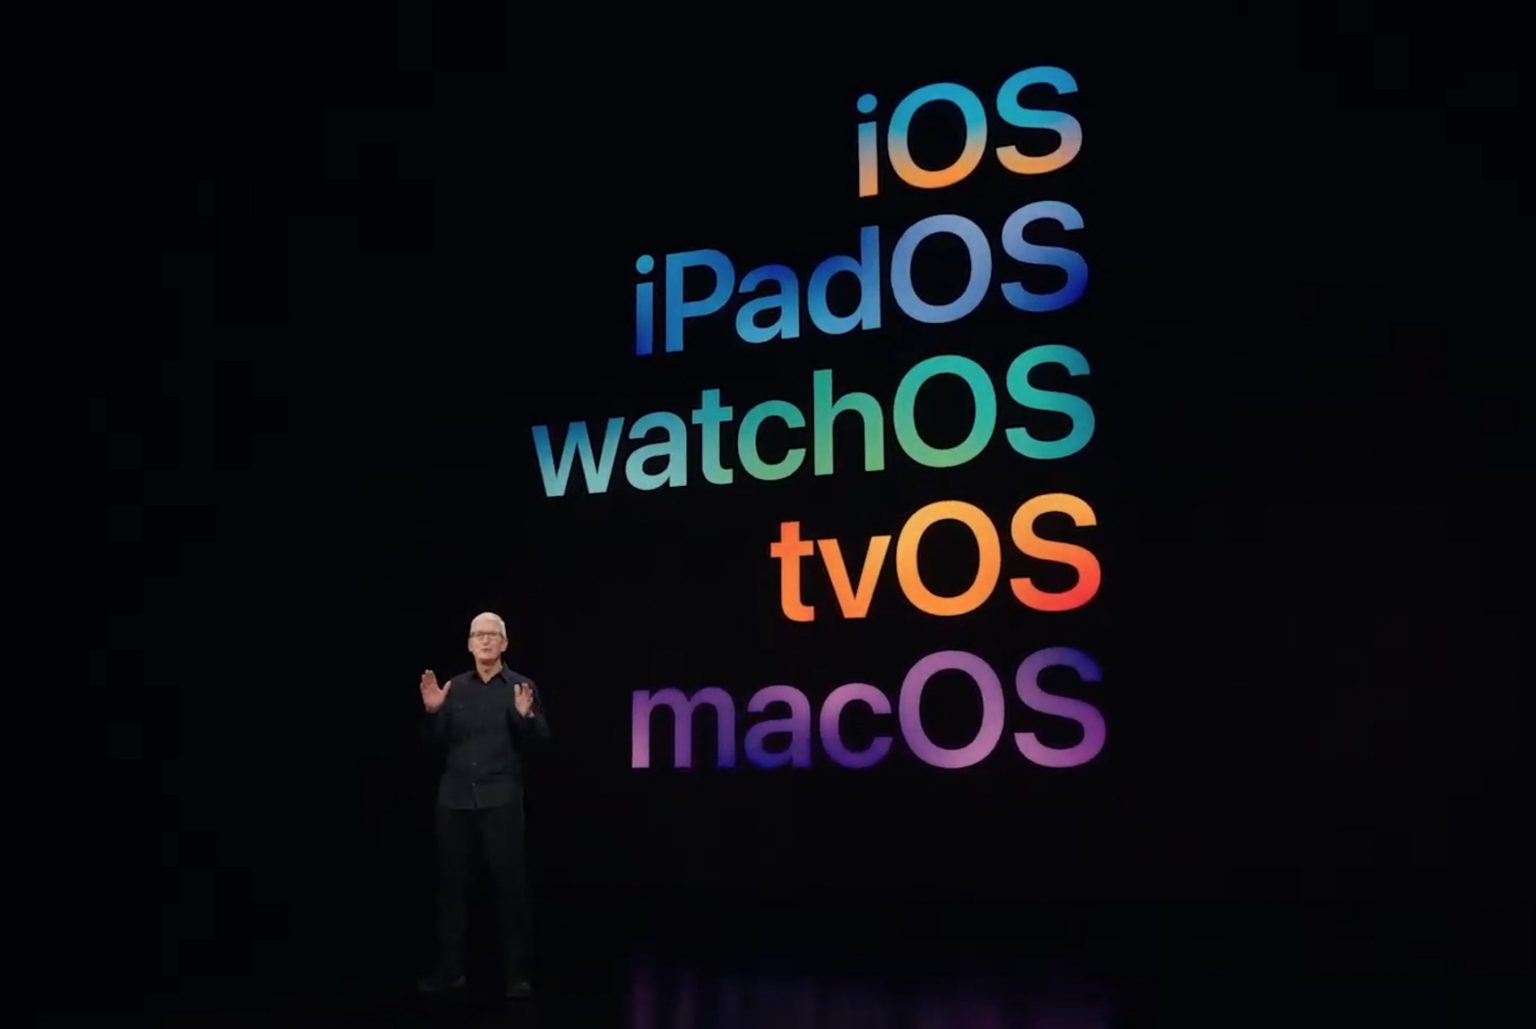 Apple CEO Tim Cook wraps the WWDC21 keynote on June 7, 2021.